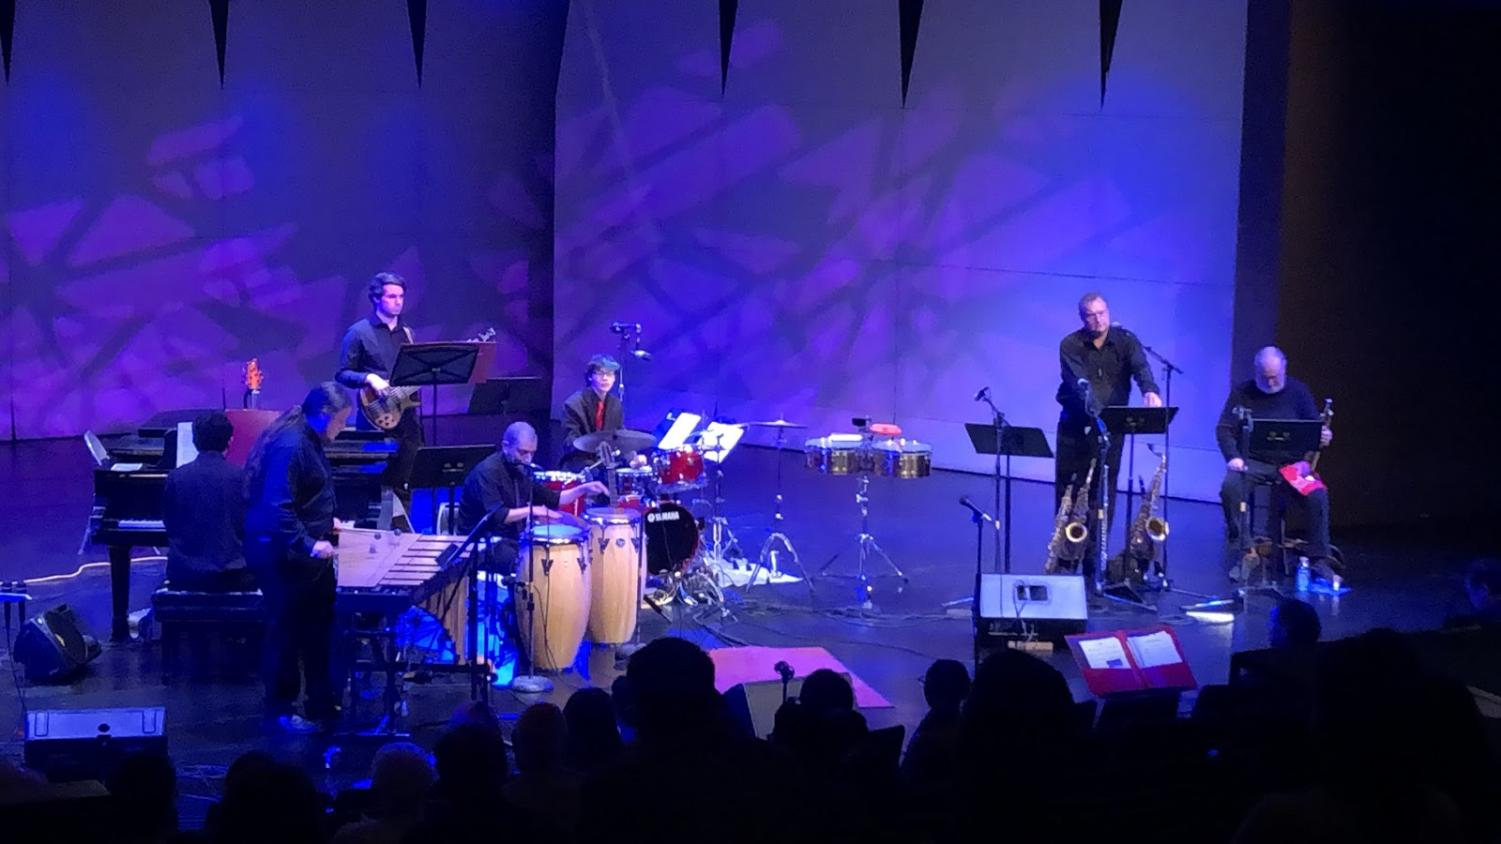 """Latin jazz ensemble performs """"Soul Sauce (Guachi Guara)"""" by, Dizzy Gillespie/Chano Pozo, with special guests, Kevin Cearley (trumpet), and Ron Catalano (saxophone)"""